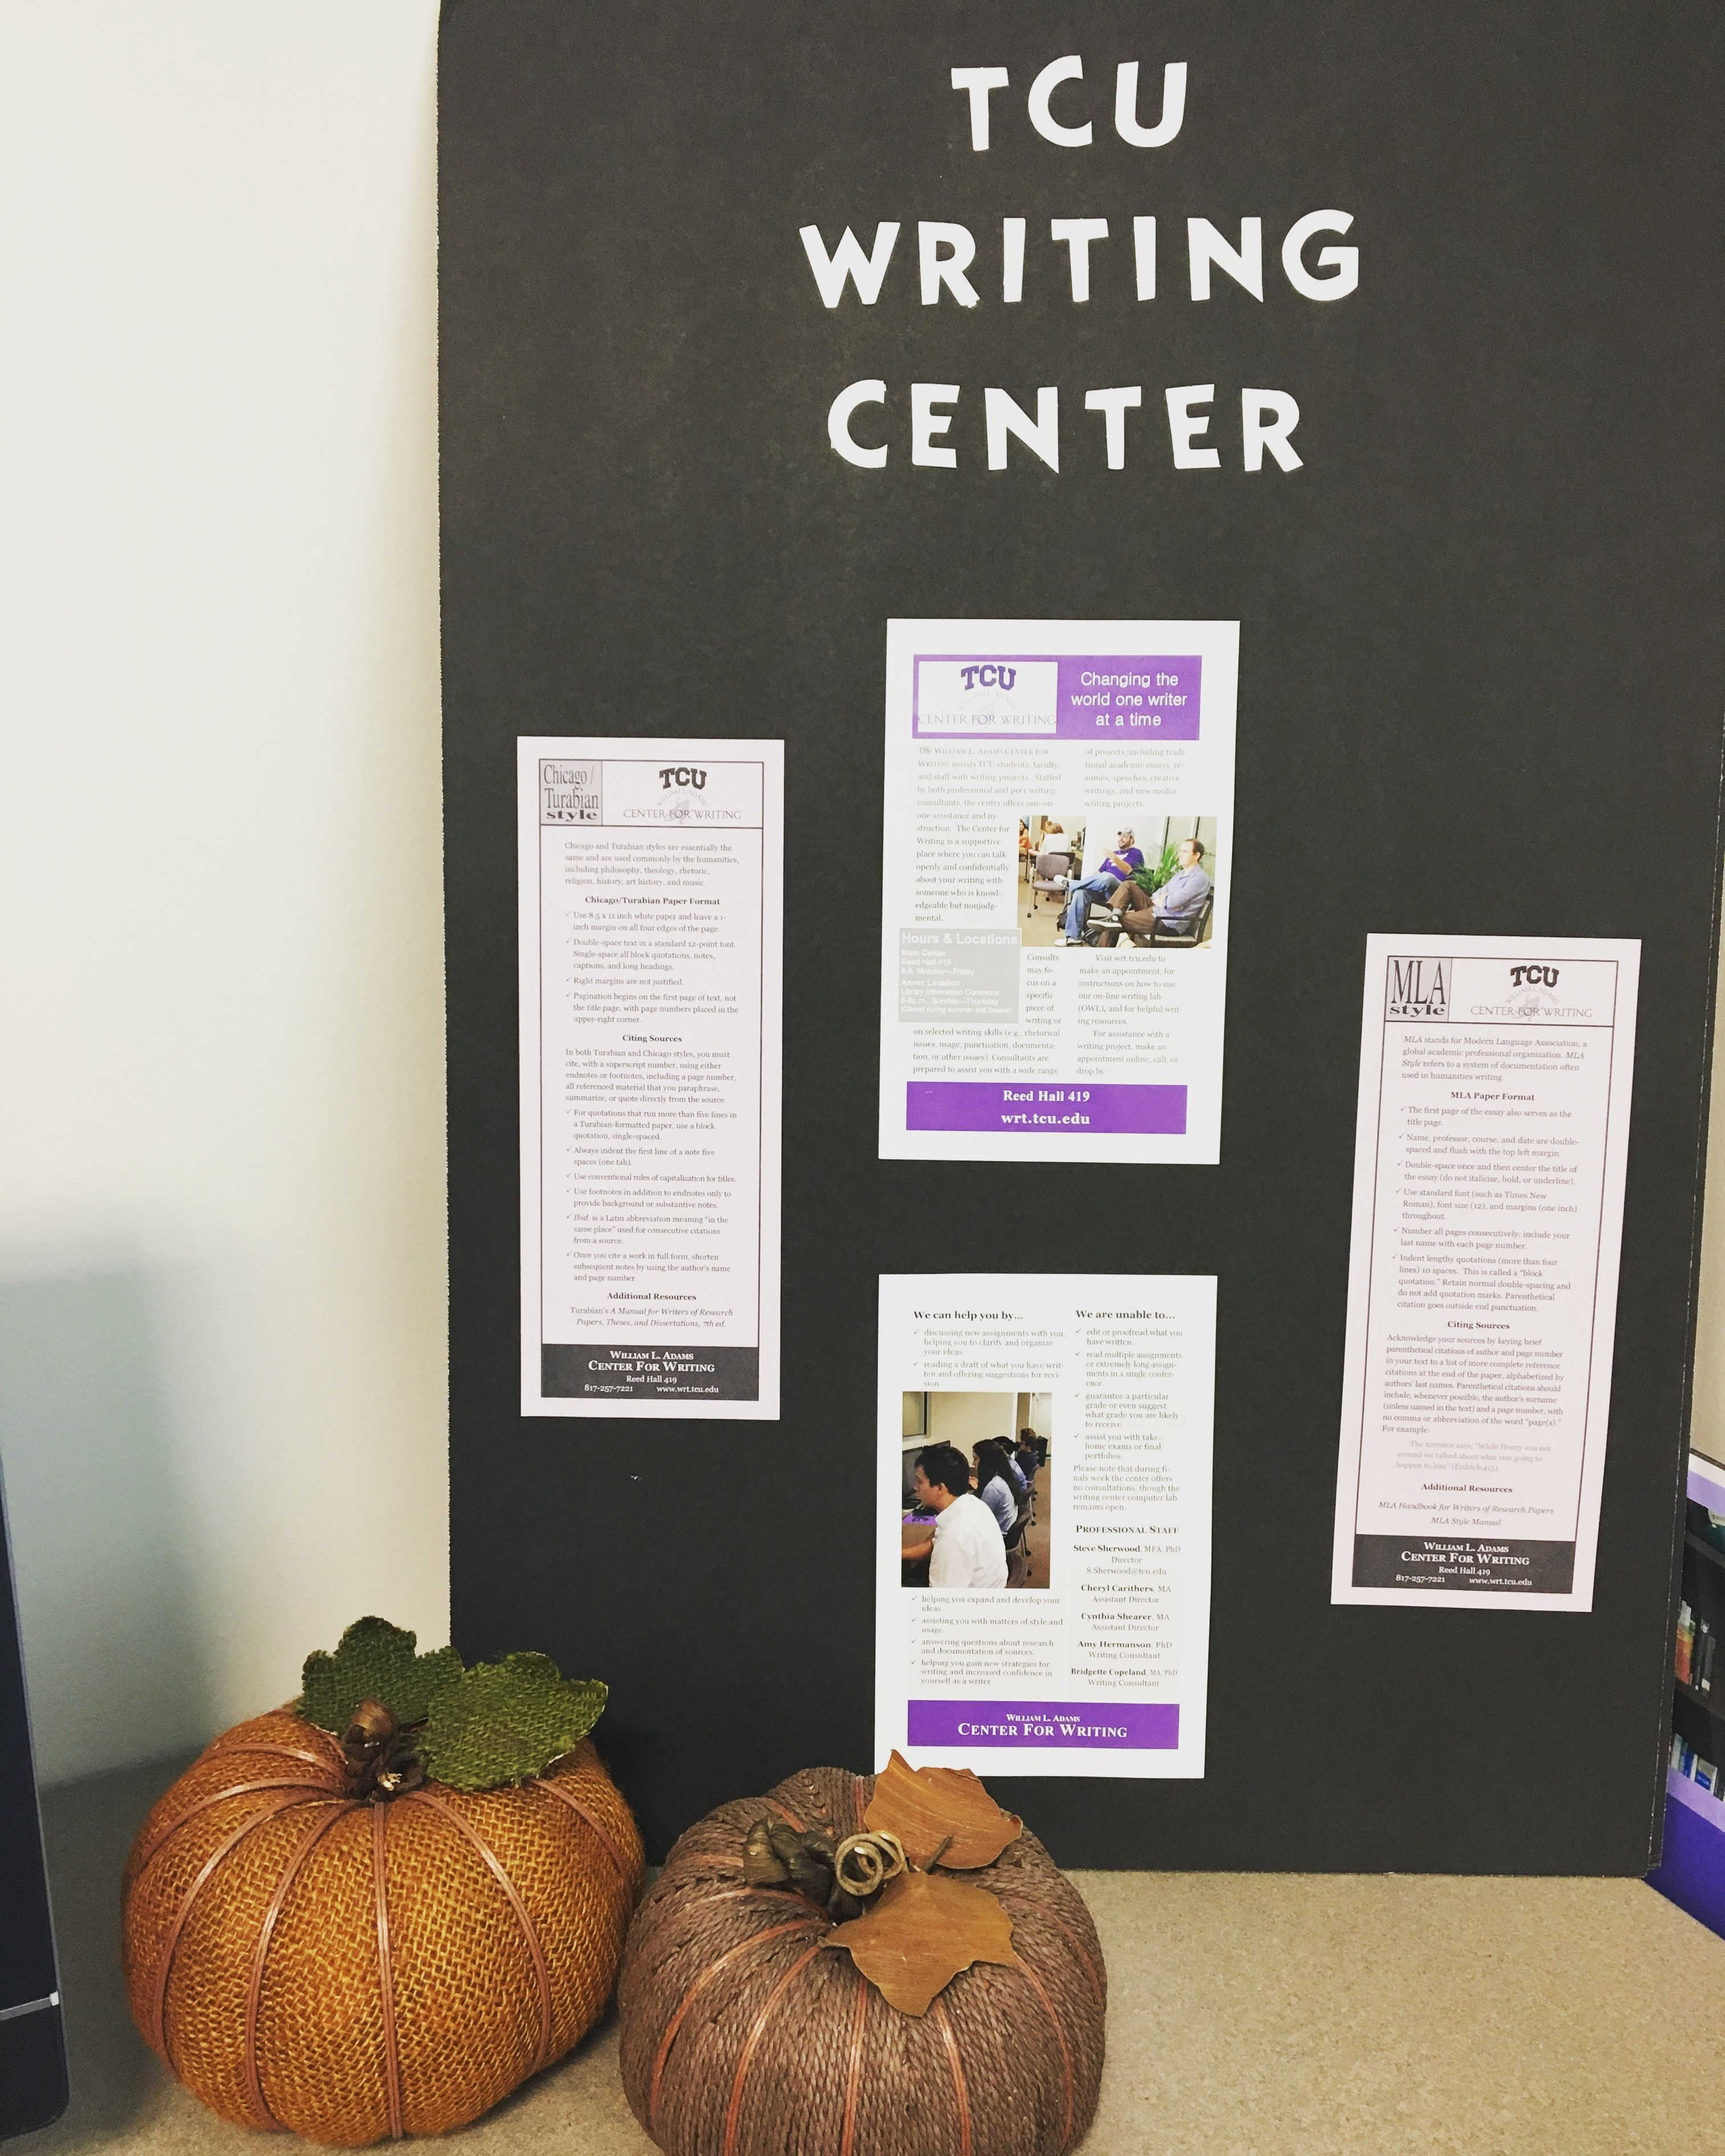 Happy early fall break, students! Our main center's